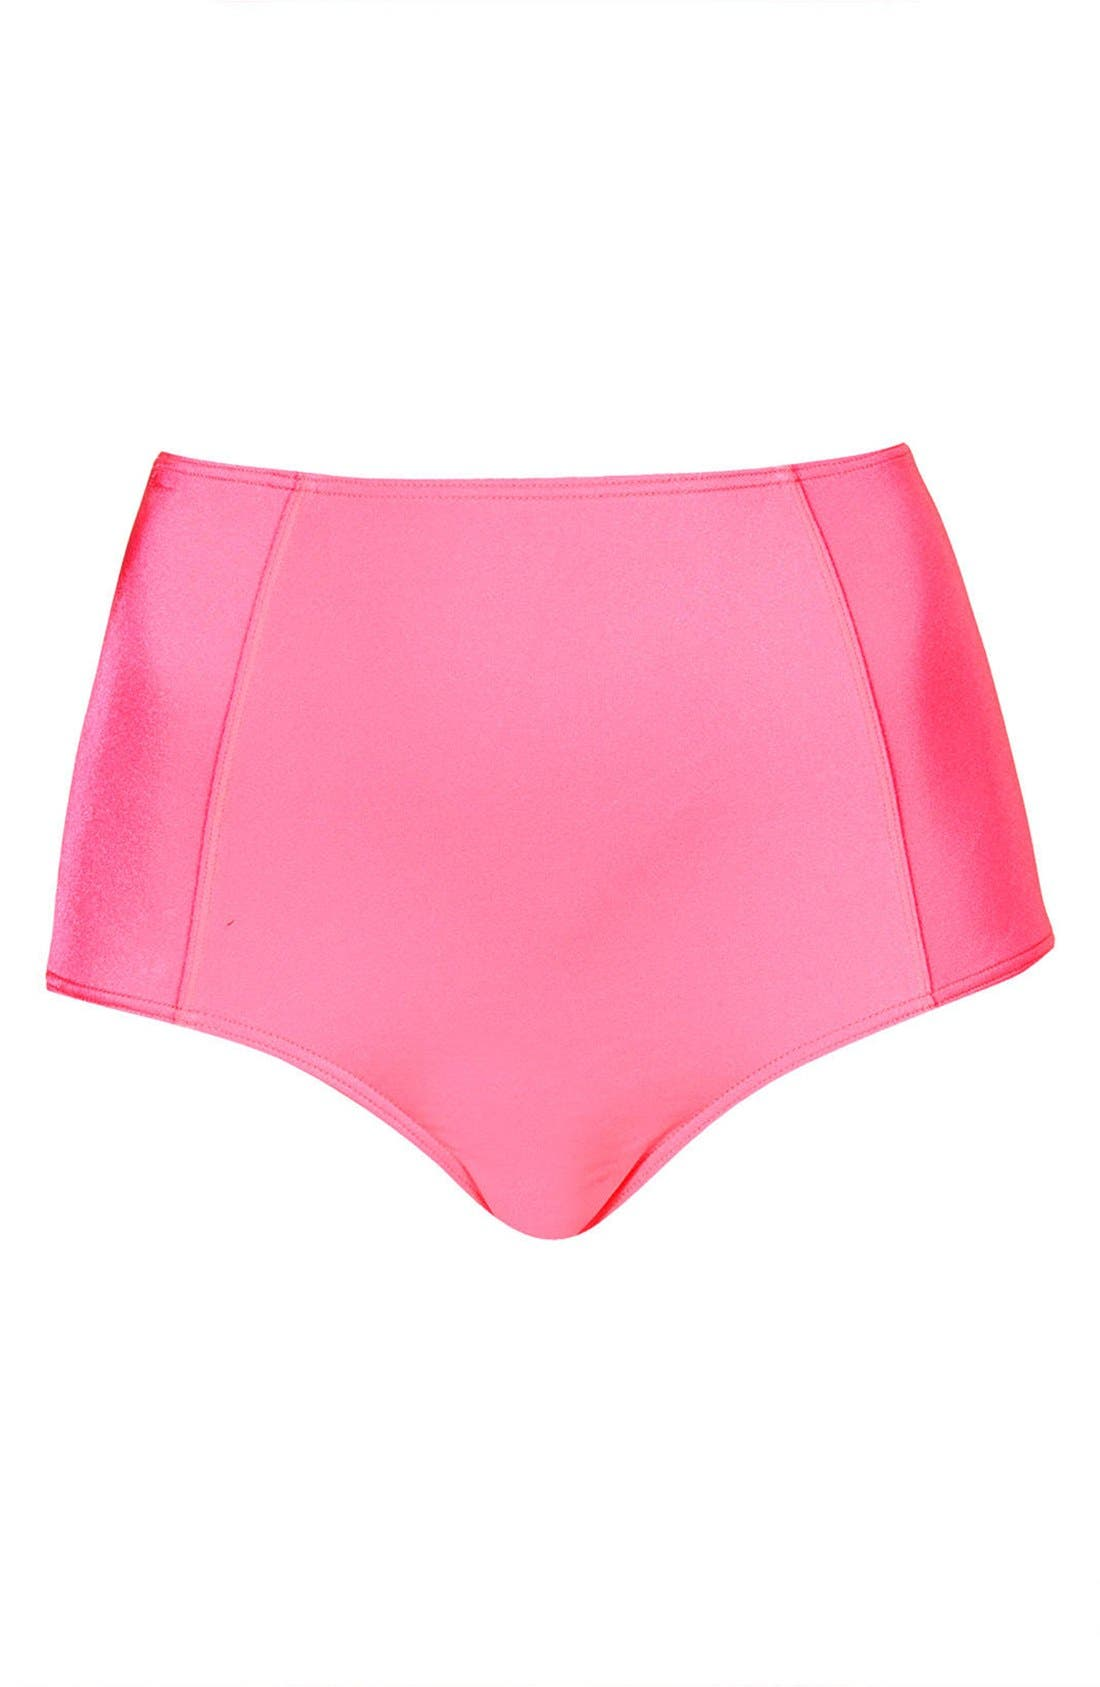 Alternate Image 1 Selected - Topshop High Waist Bikini Bottoms